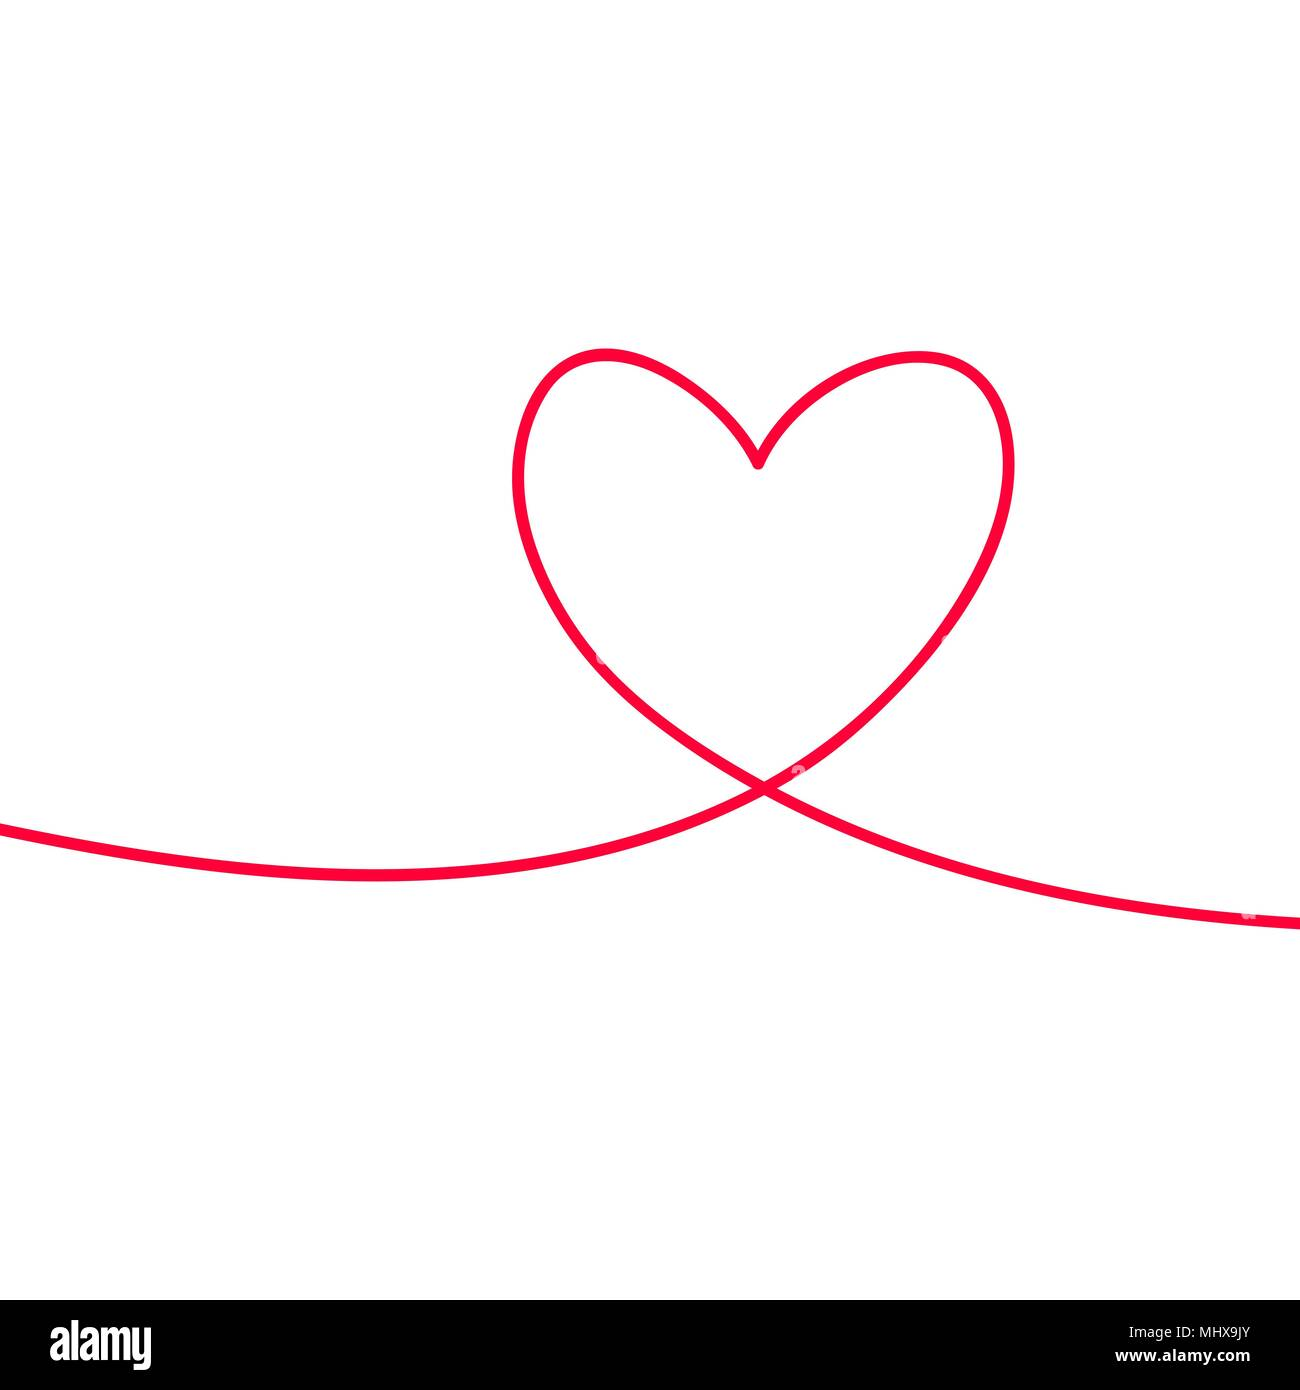 Heart in continuous drawing lines. Continuous black line. The work of flat design. Symbol of love and tenderness - Stock Image